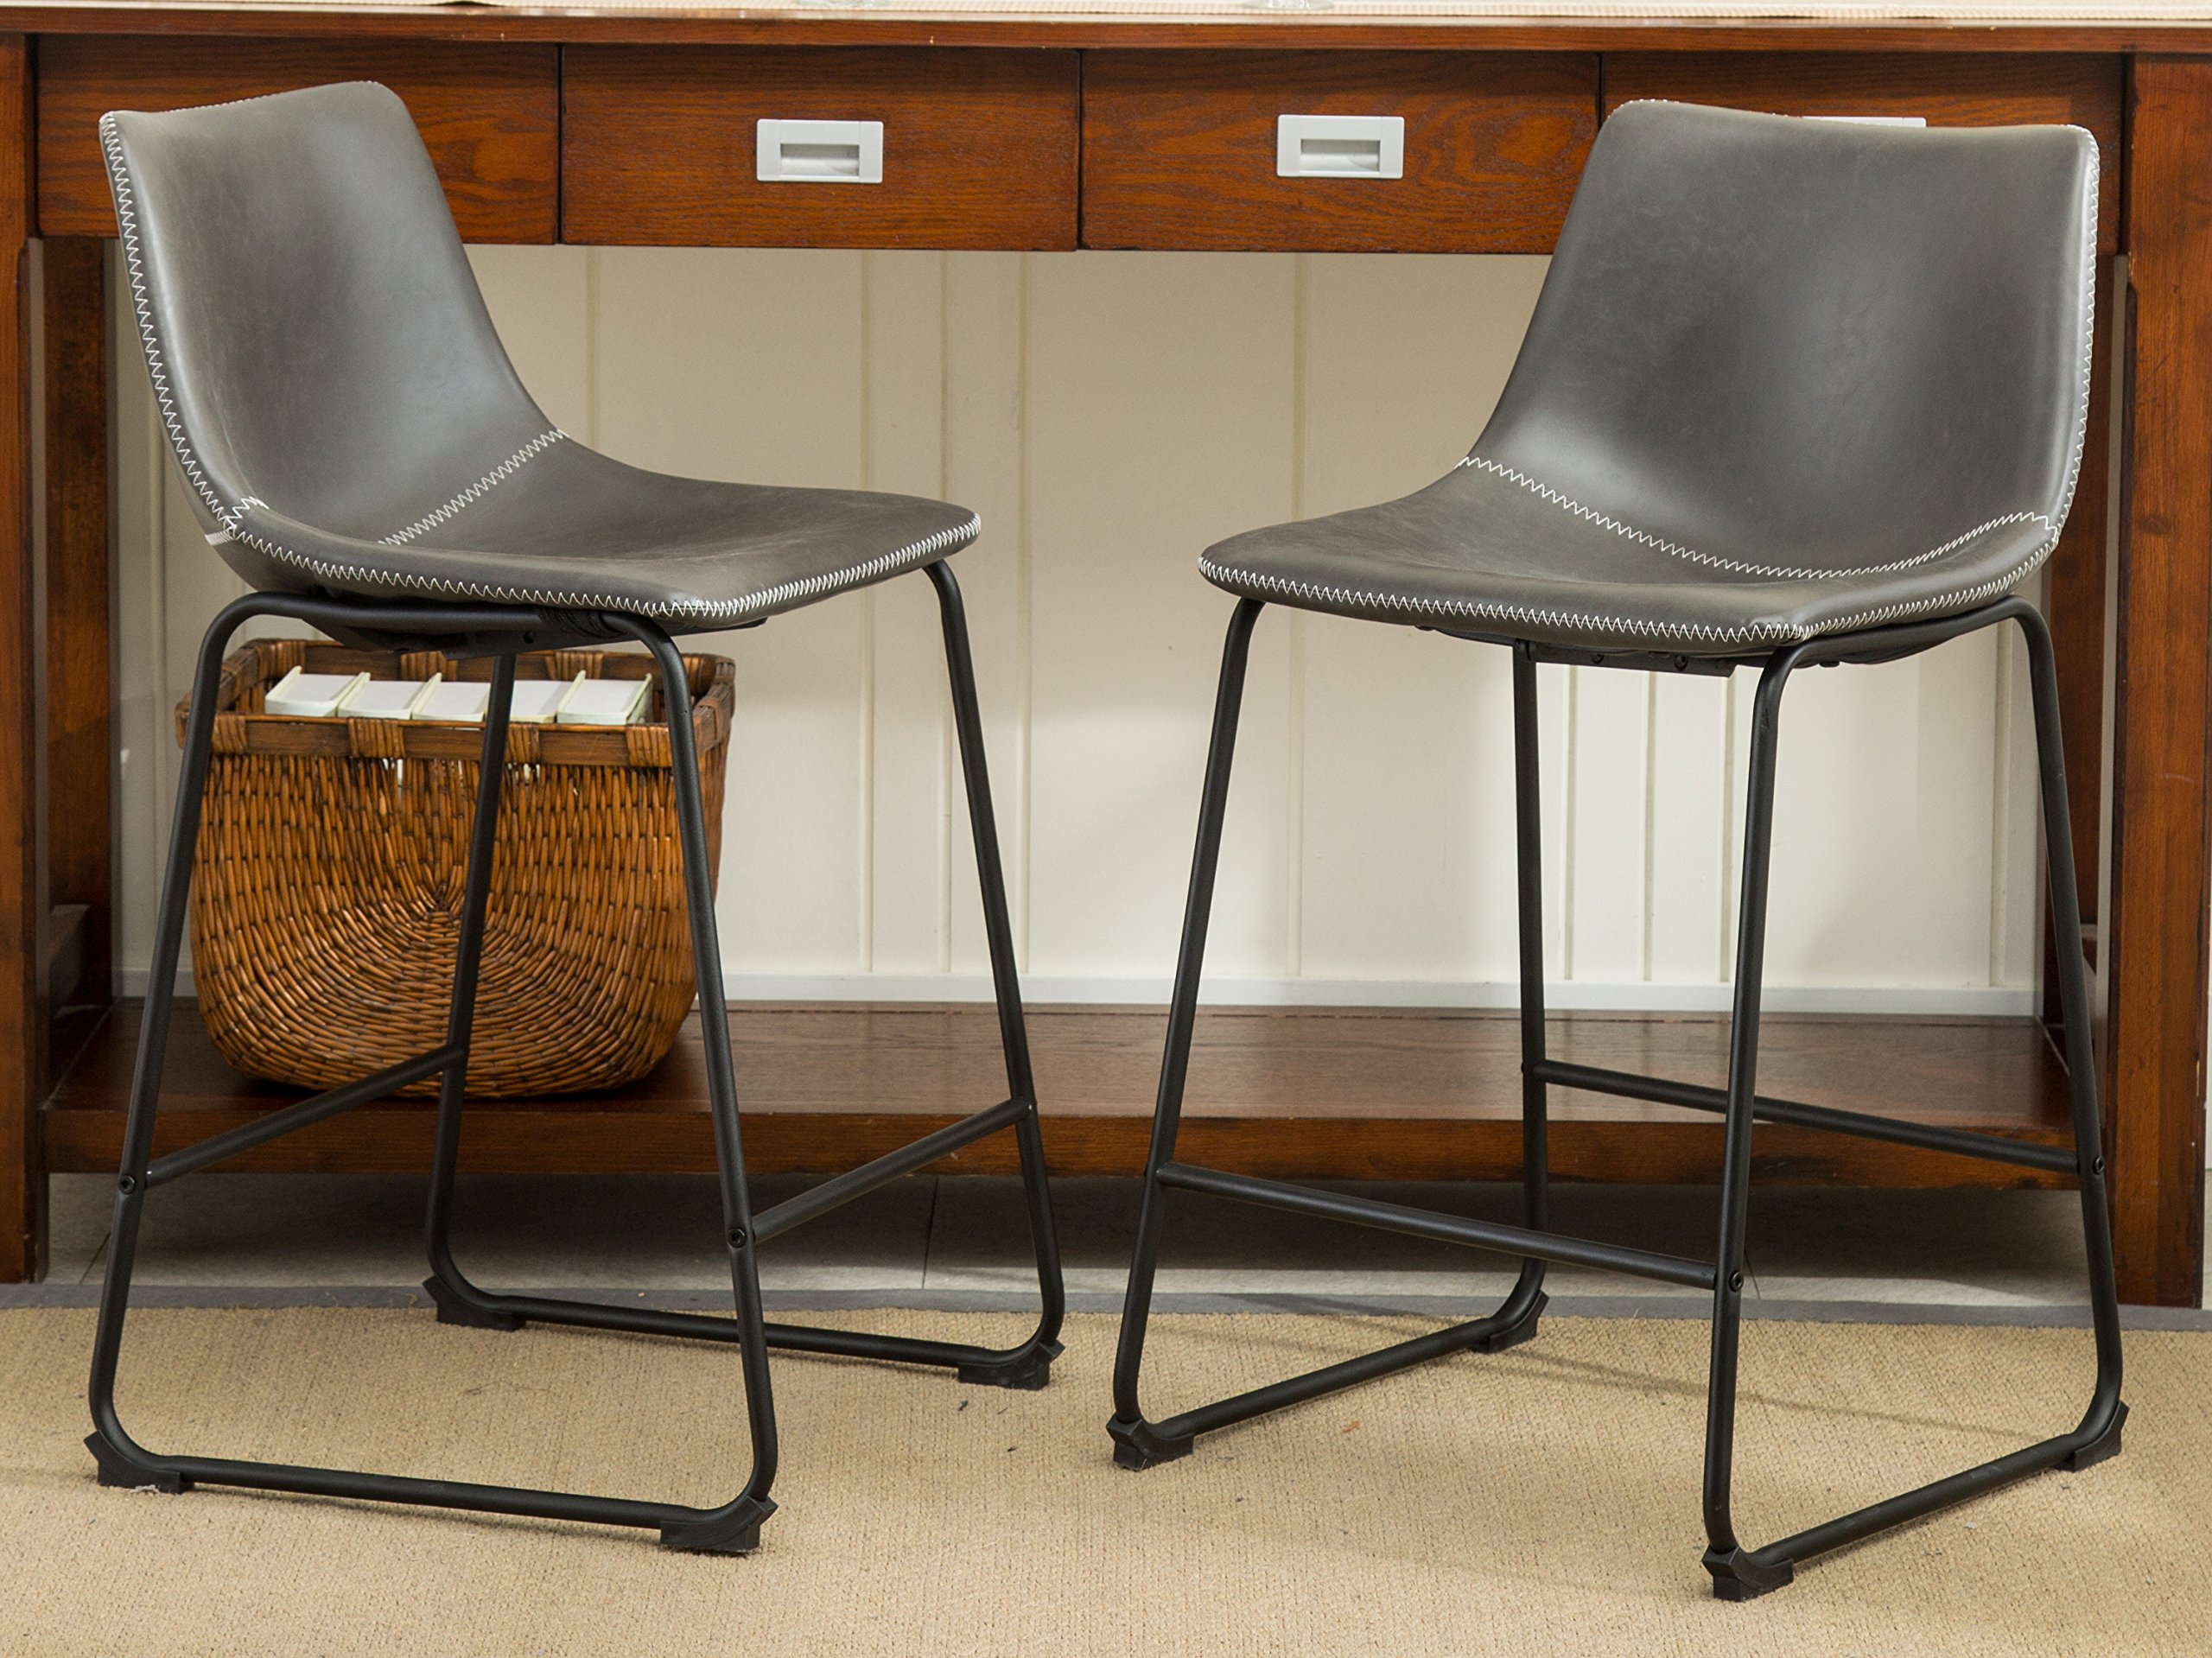 Roundhill Furniture Lotusville Vintage PU Leather Counter Height Stools, Antique Gray, Set of 2 by Roundhill Furniture